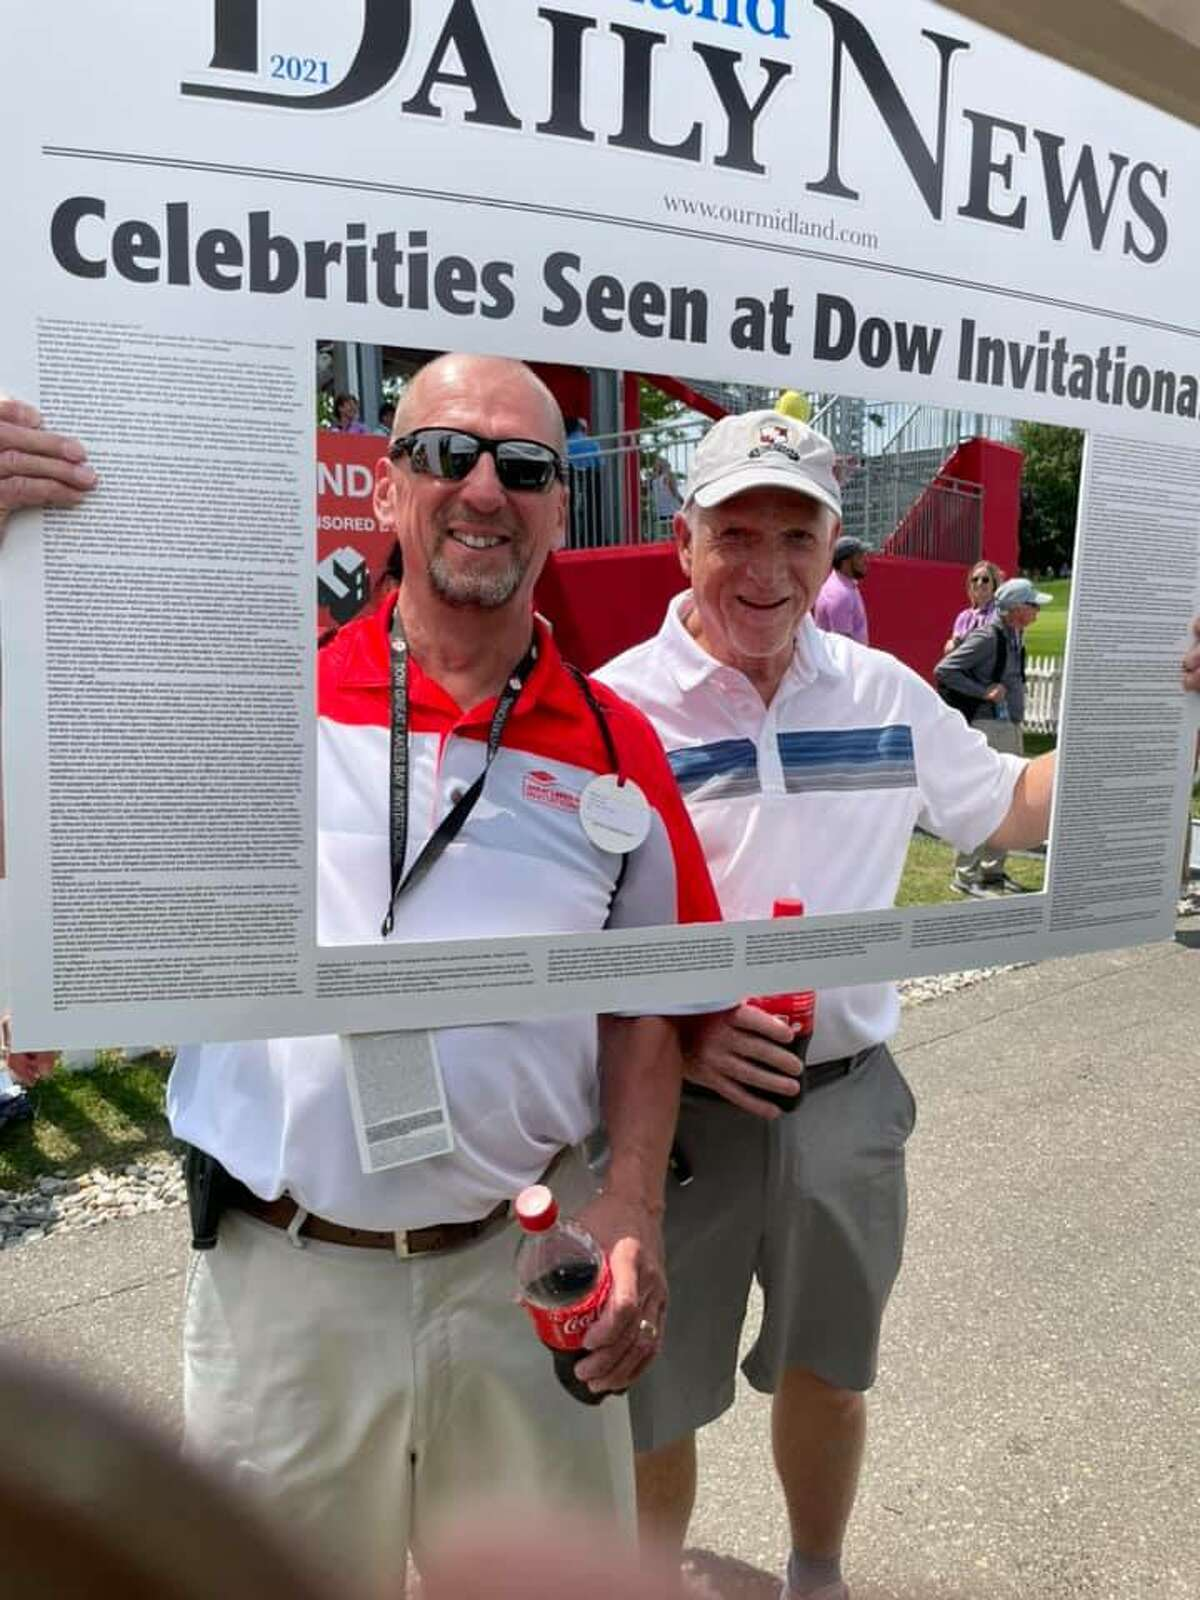 Spectators, volunteers, players, and others took the opportunity to have their Midland Daily News